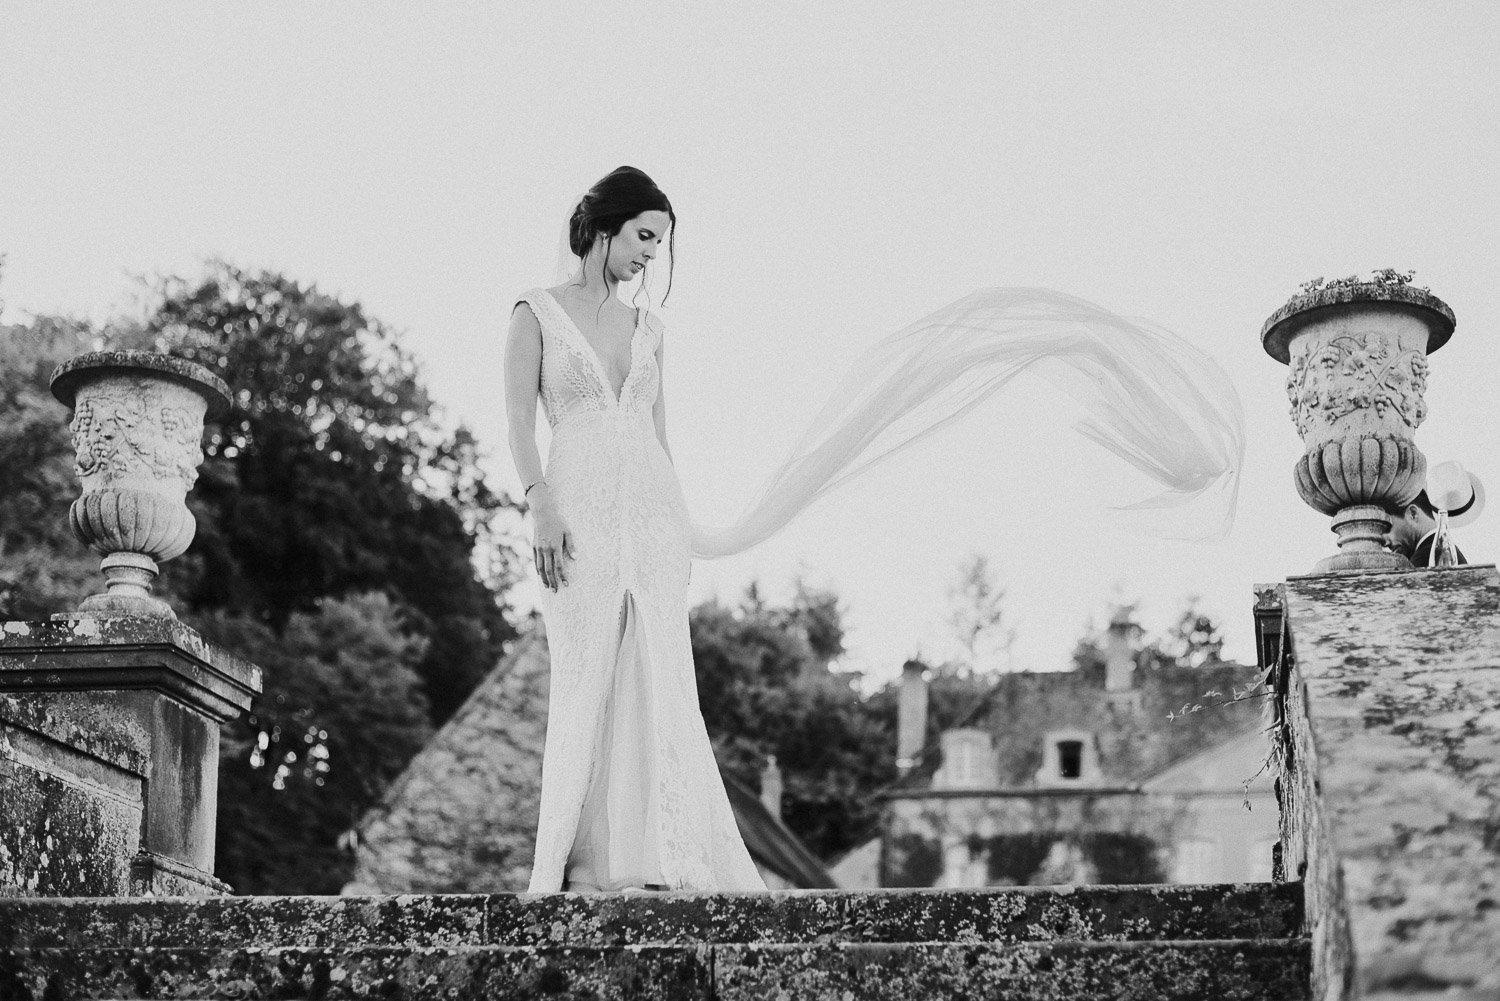 bergerac_wedding_katy_webb_photography_france_UK133